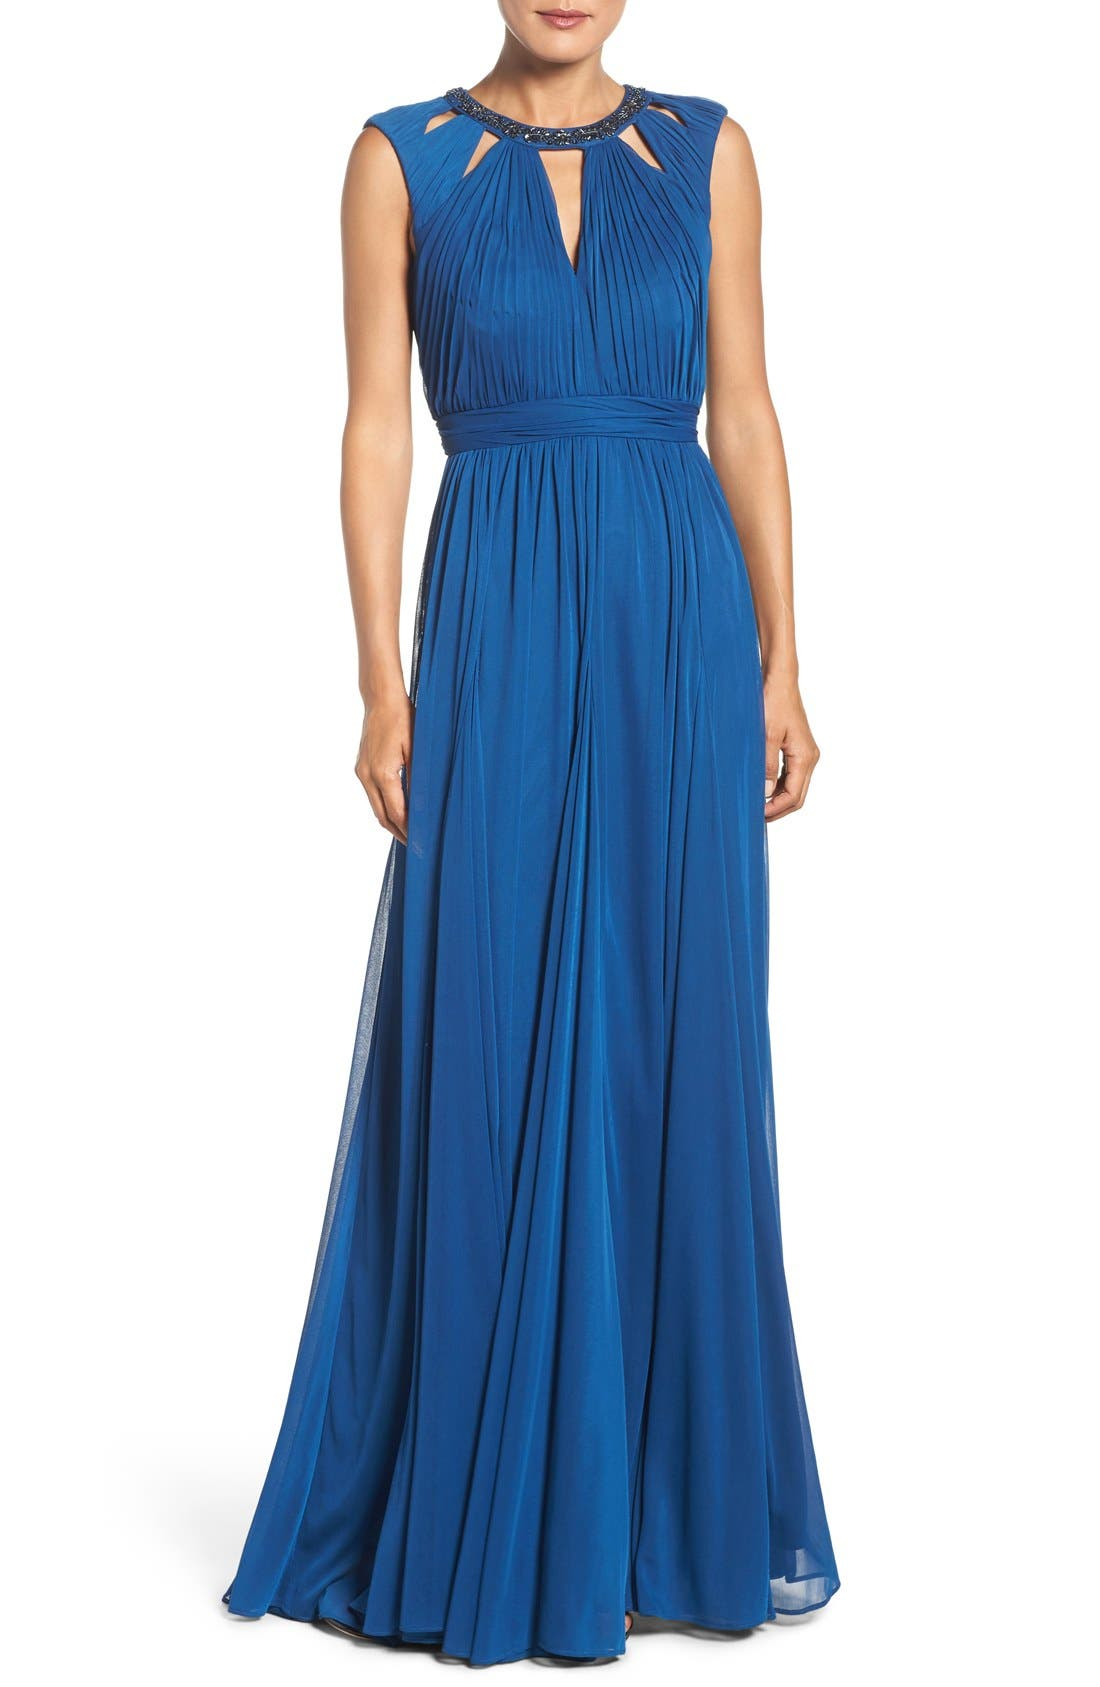 Alternate Image 1 Selected - Adrianna Papell Embellished Collar Shirred Gown